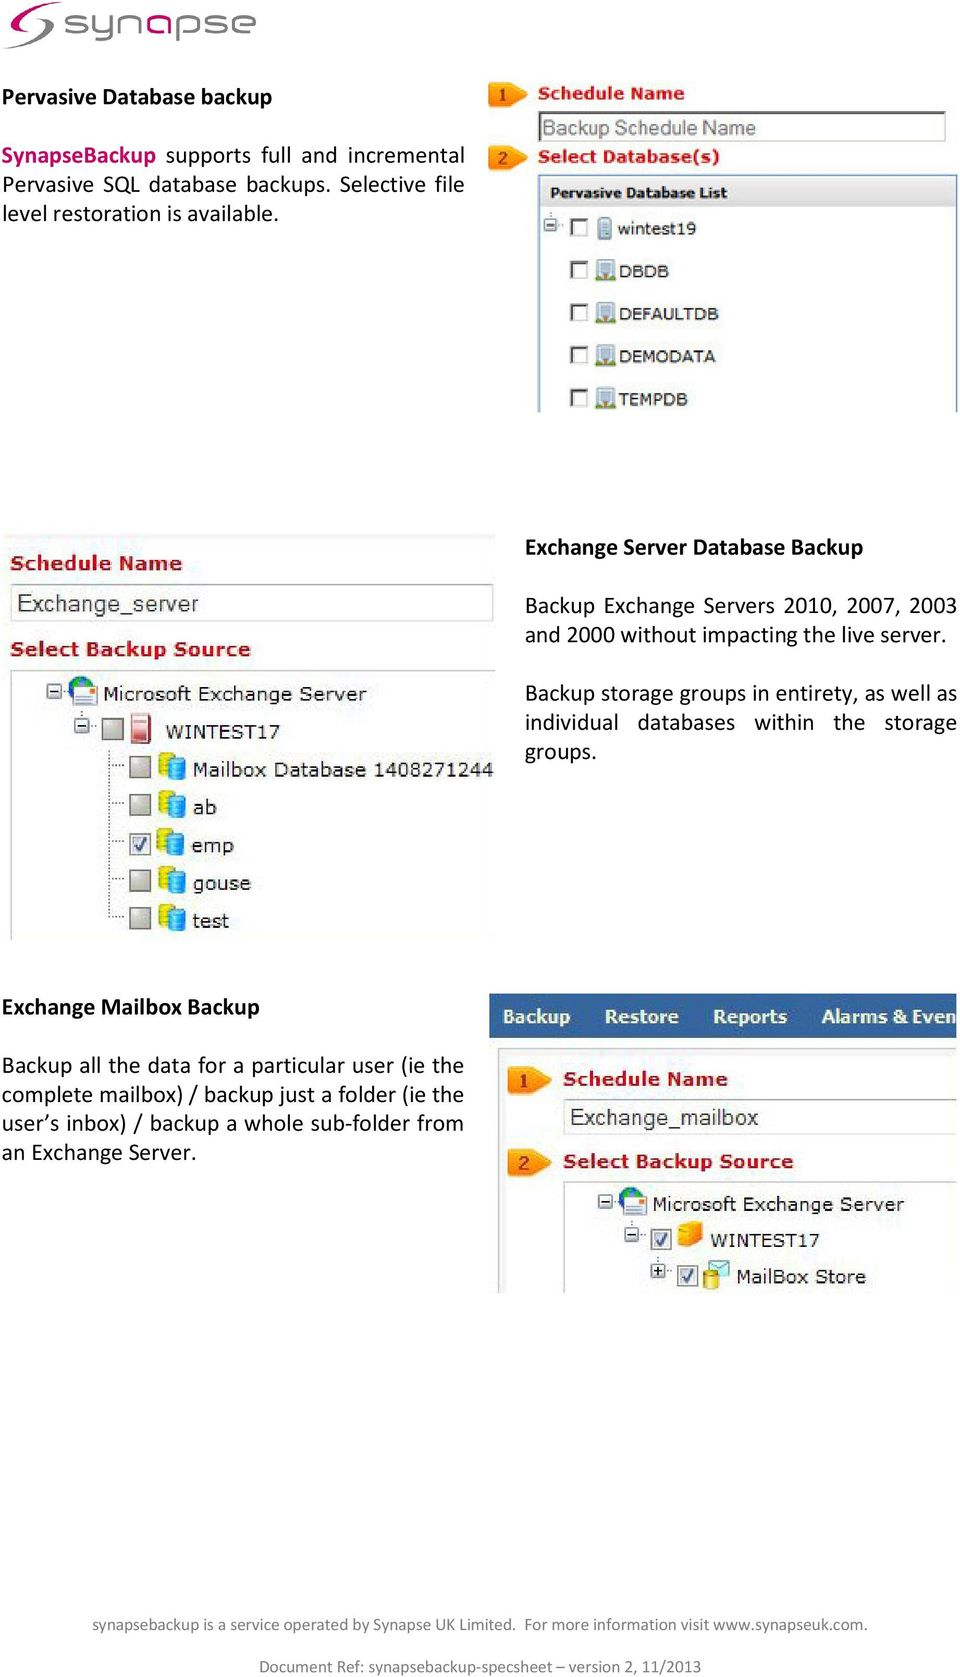 Exchange Server Database Backup Backup Exchange Servers 2010, 2007, 2003 and 2000 without impacting the live server.